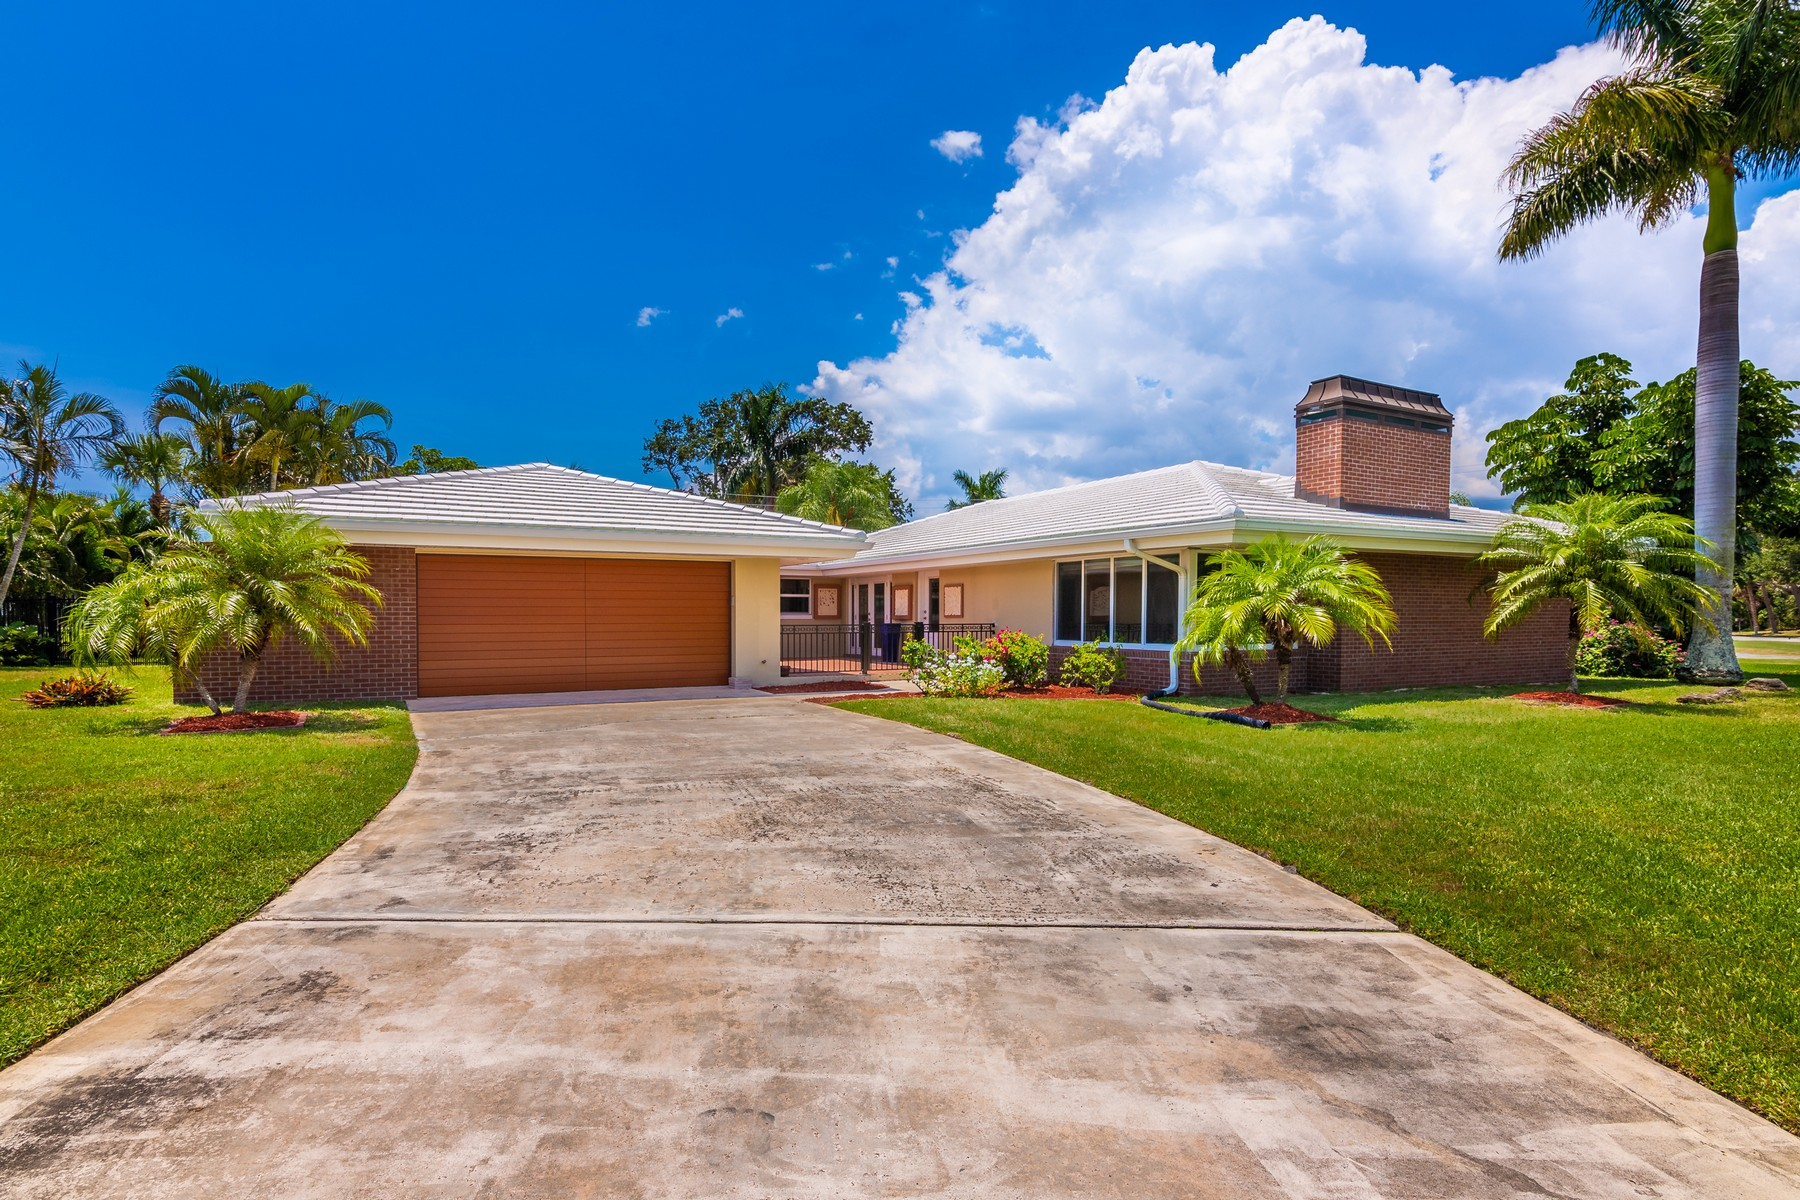 Single Family Homes for Sale at Indialantic By The Sea 1301 W. Riverside Drive Indialantic, Florida 32903 United States